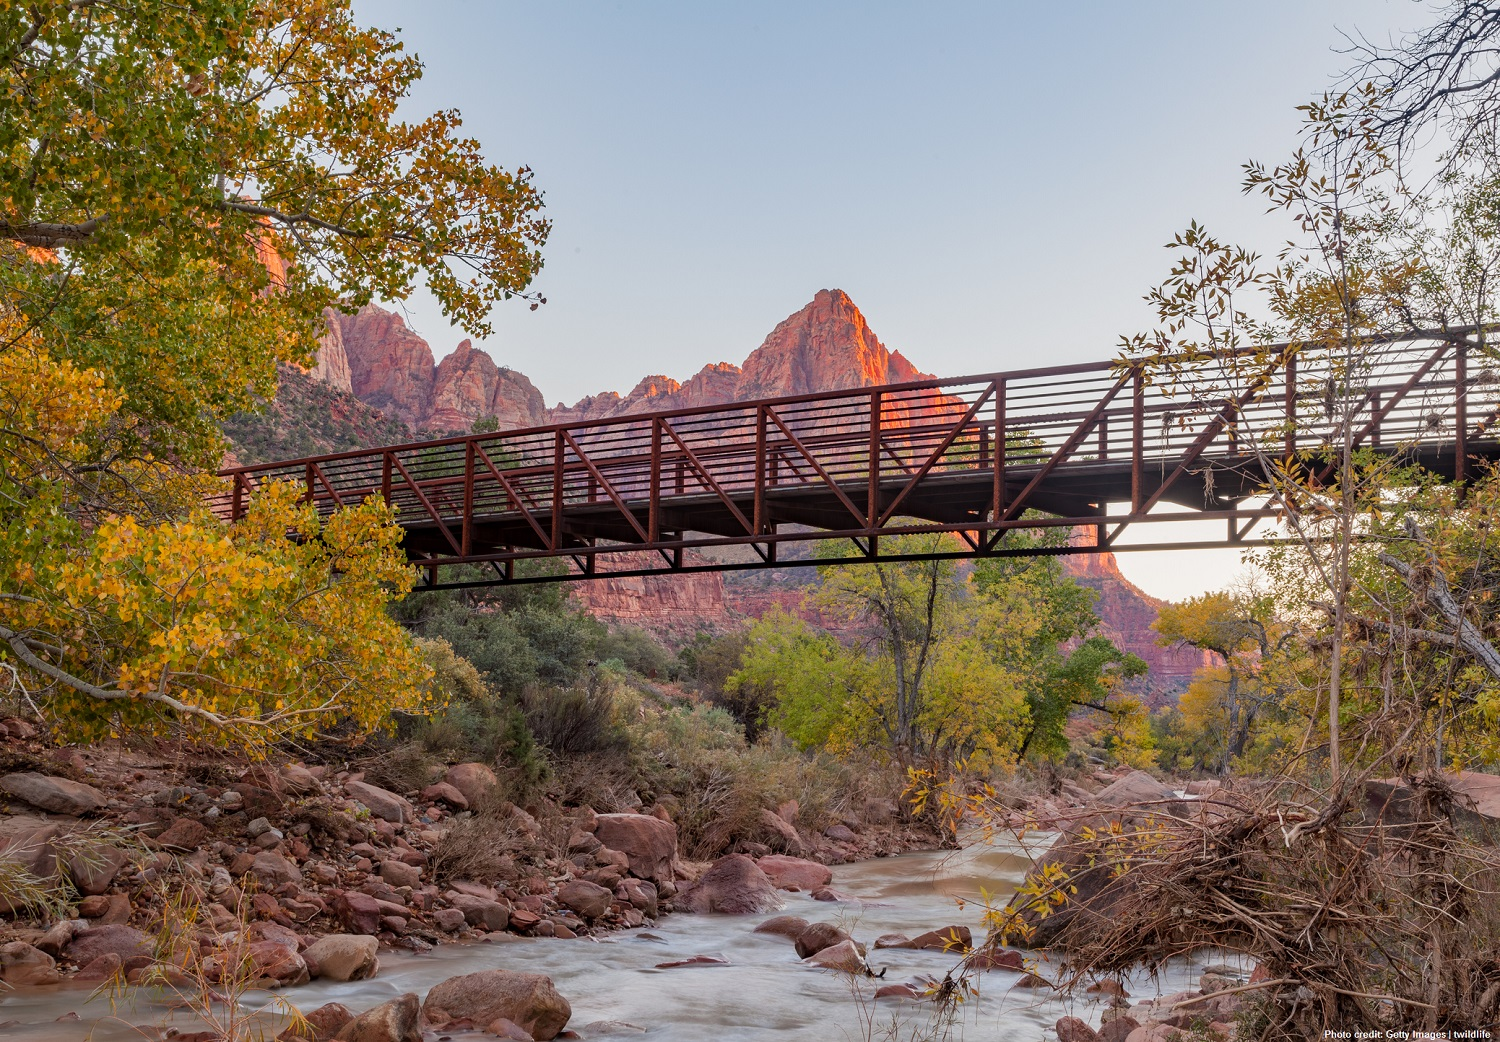 Head to Southern Utah this fall to experience the fall colors in Zion National Park!